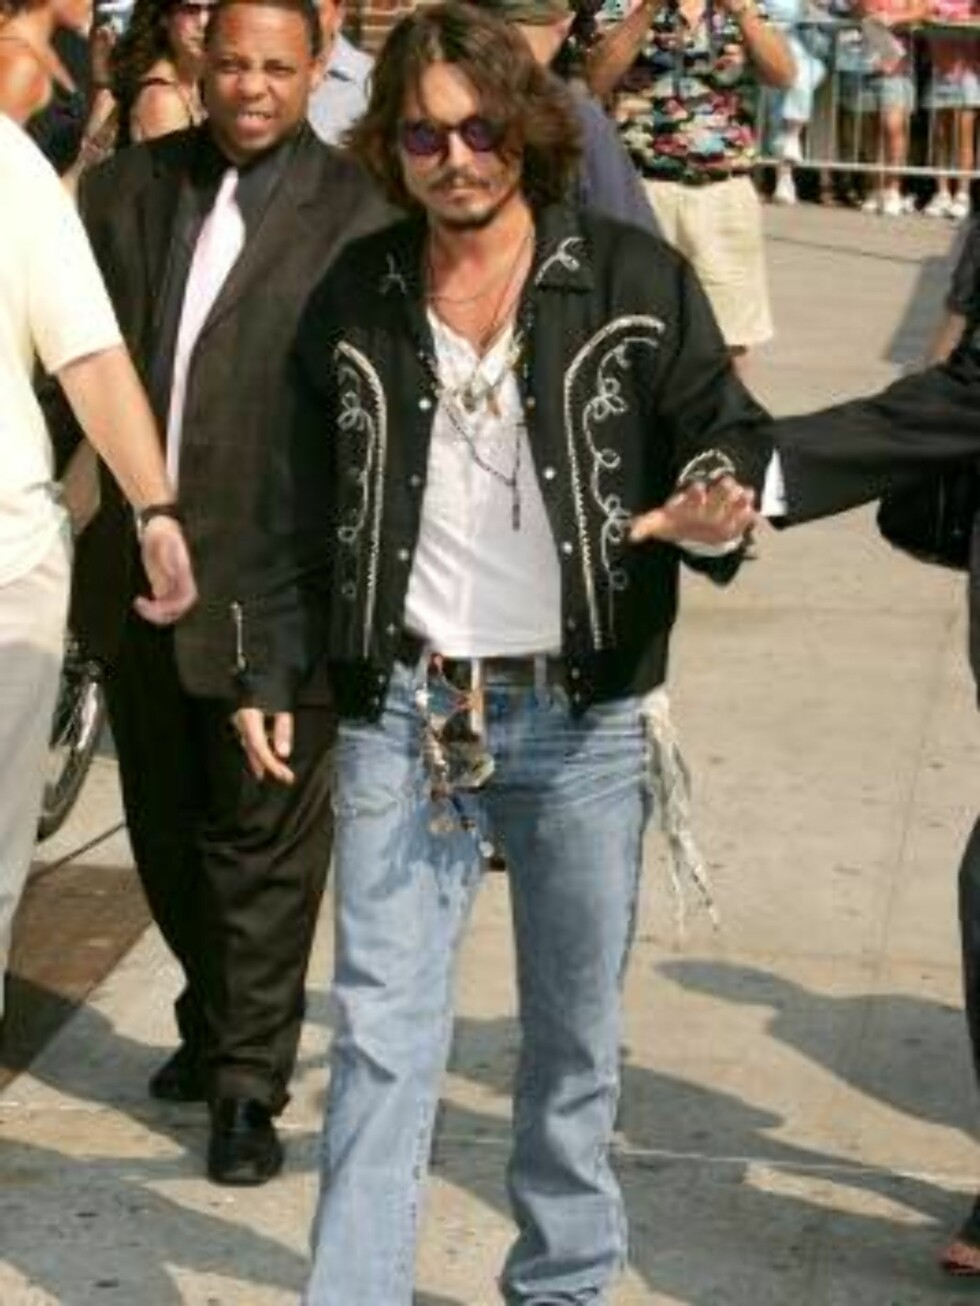 NEW YORK - JULY 27:  Actor Johnny Depp arrives for a taping of  The Late Show With David Letterman on July 27, 2006 in New York City.  (Photo by Peter Kramer/Getty Images) *** Local Caption *** Johnny Depp  * SPECIAL INSTRUCTIONS:  * *OBJECT NAME: 7151090 Foto: All Over Press